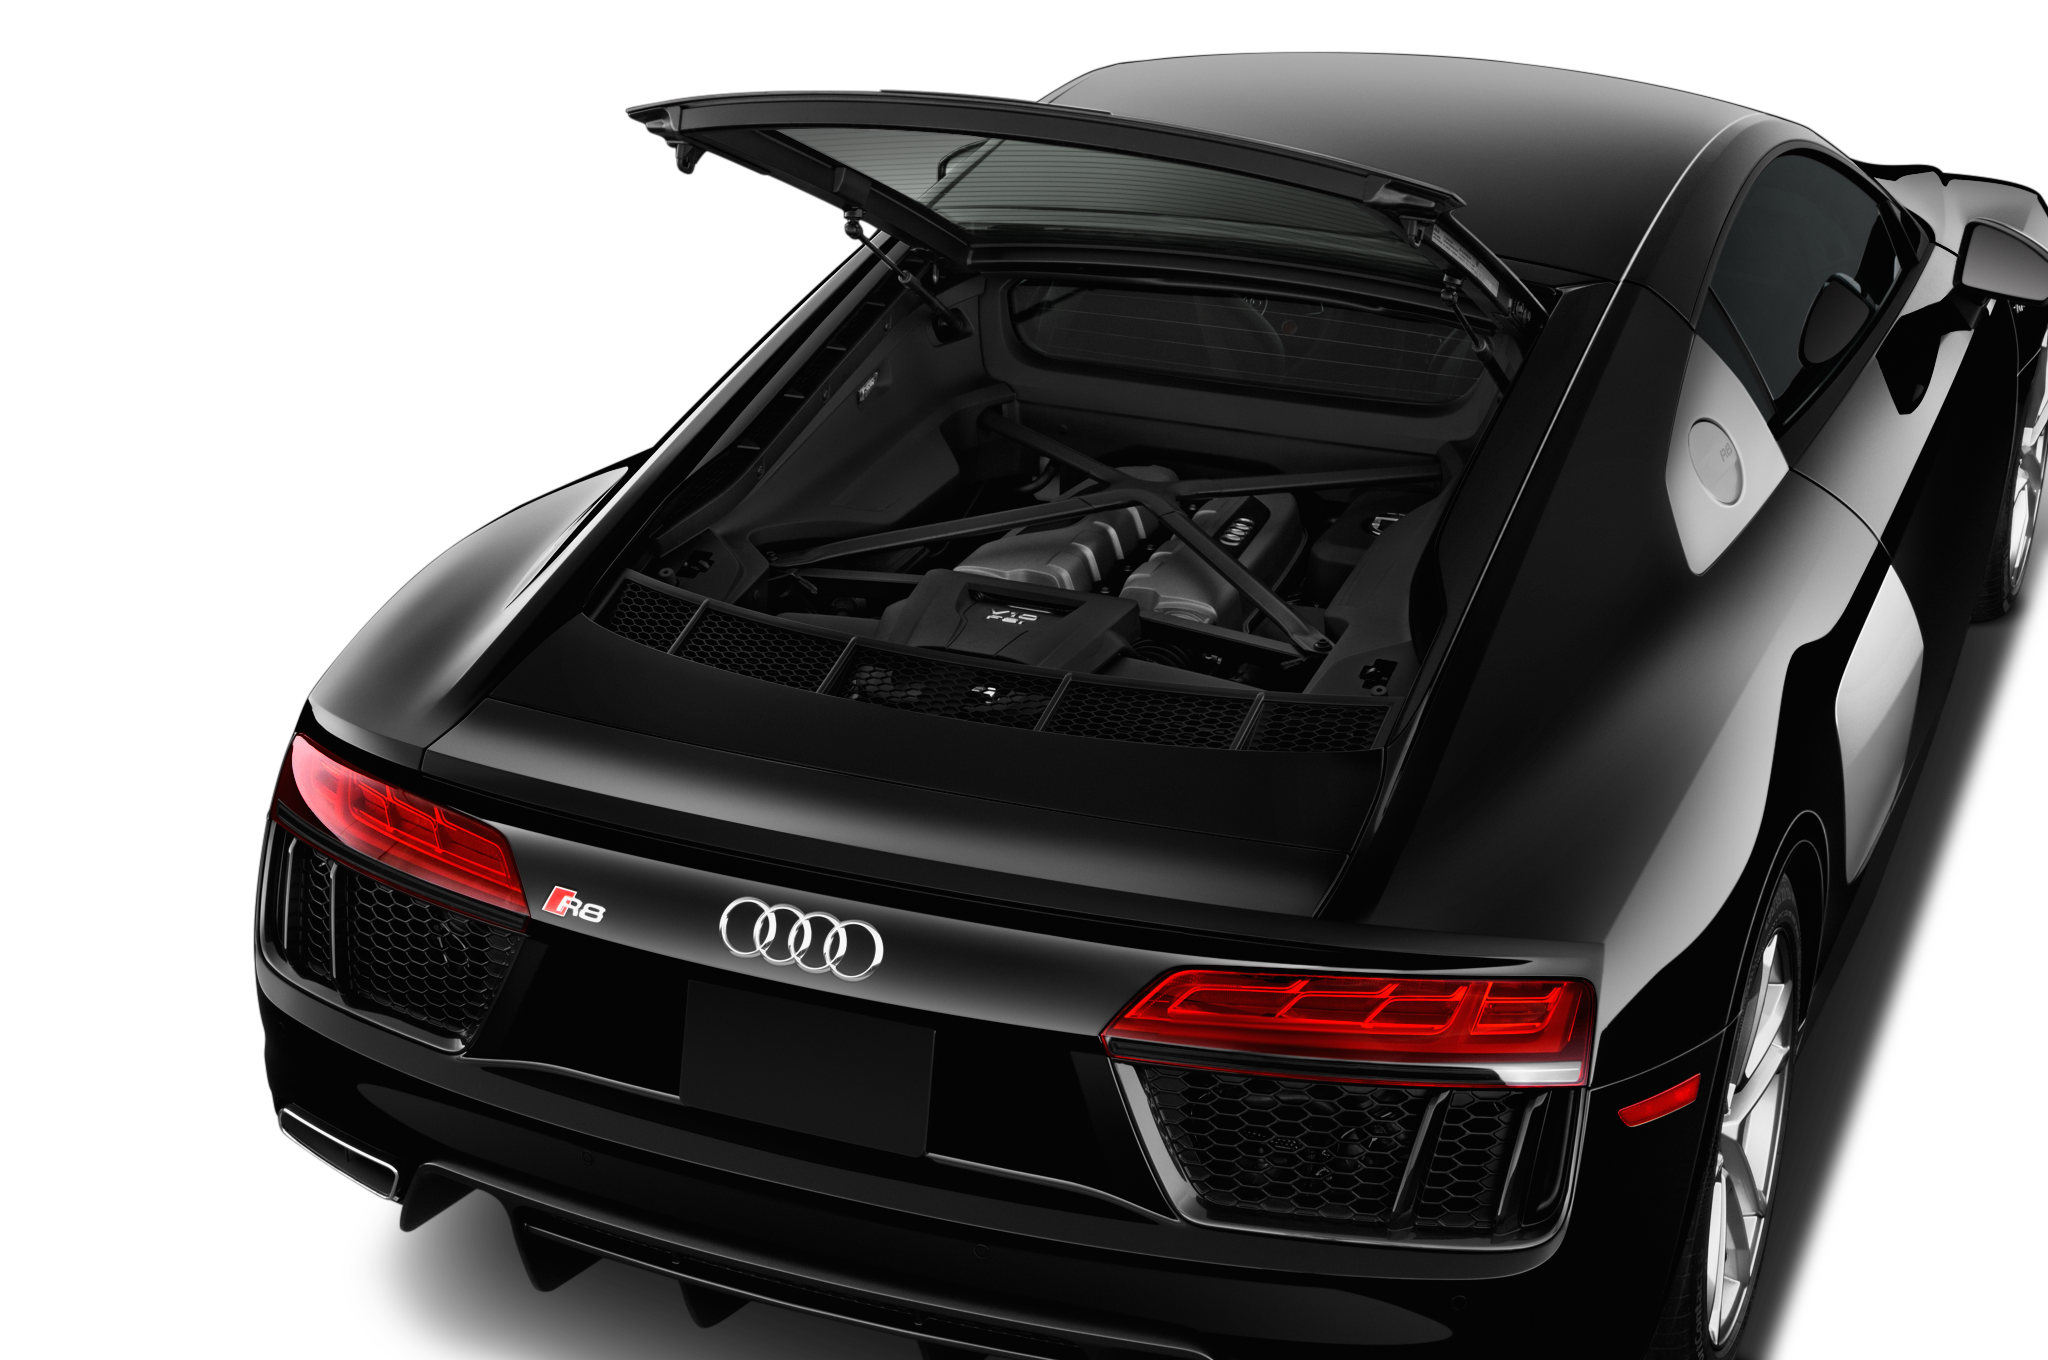 audi debuts limited edition star of lucis r8 for japan. Black Bedroom Furniture Sets. Home Design Ideas